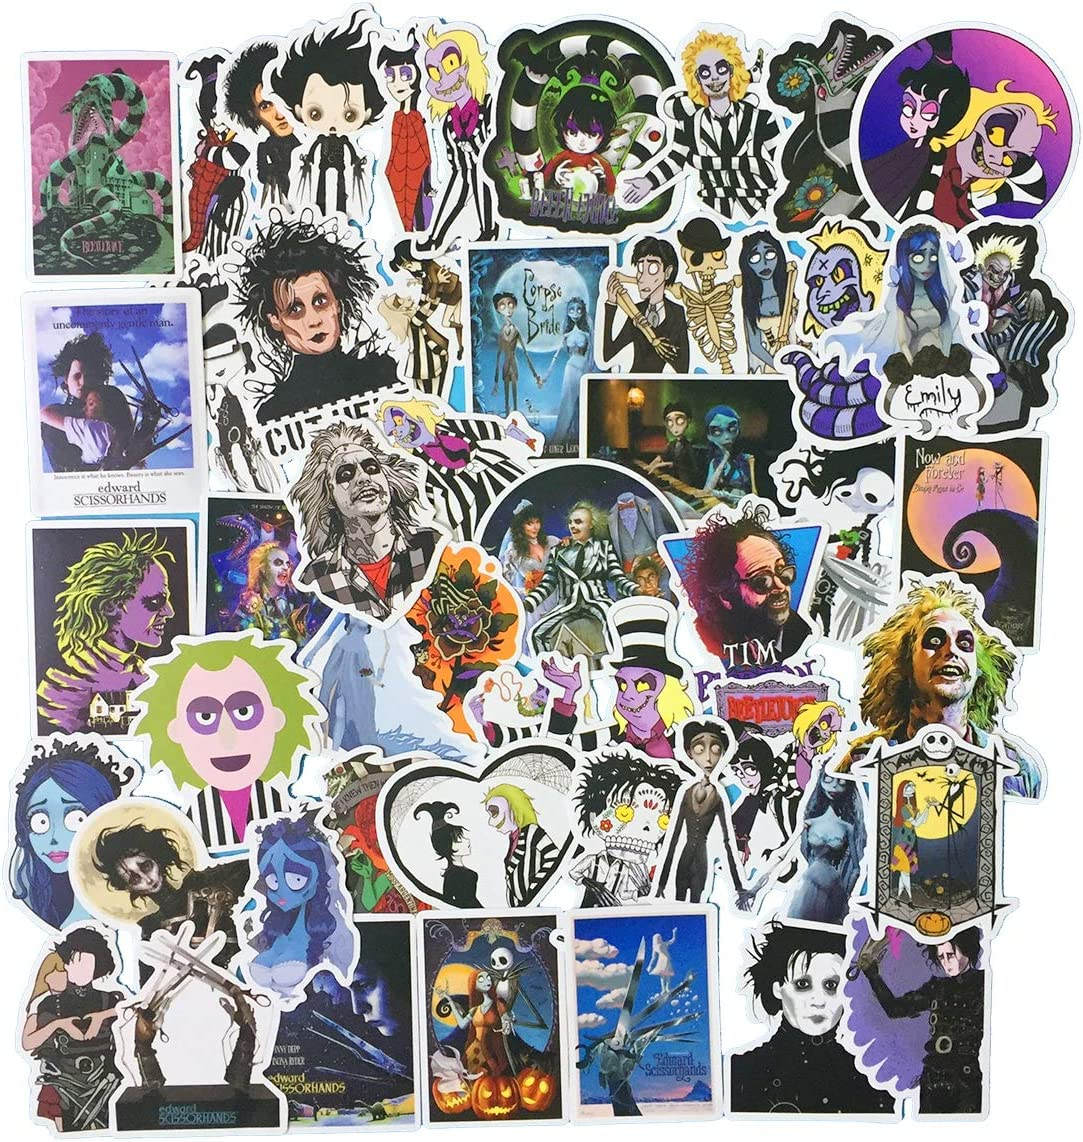 Tim Burton's The Nightmare Before Christmas Movies Theme Stickers Laptop Stickers Waterproof Skateboard Snowboard Car Bicycle Luggage Decal 50pcs Pack